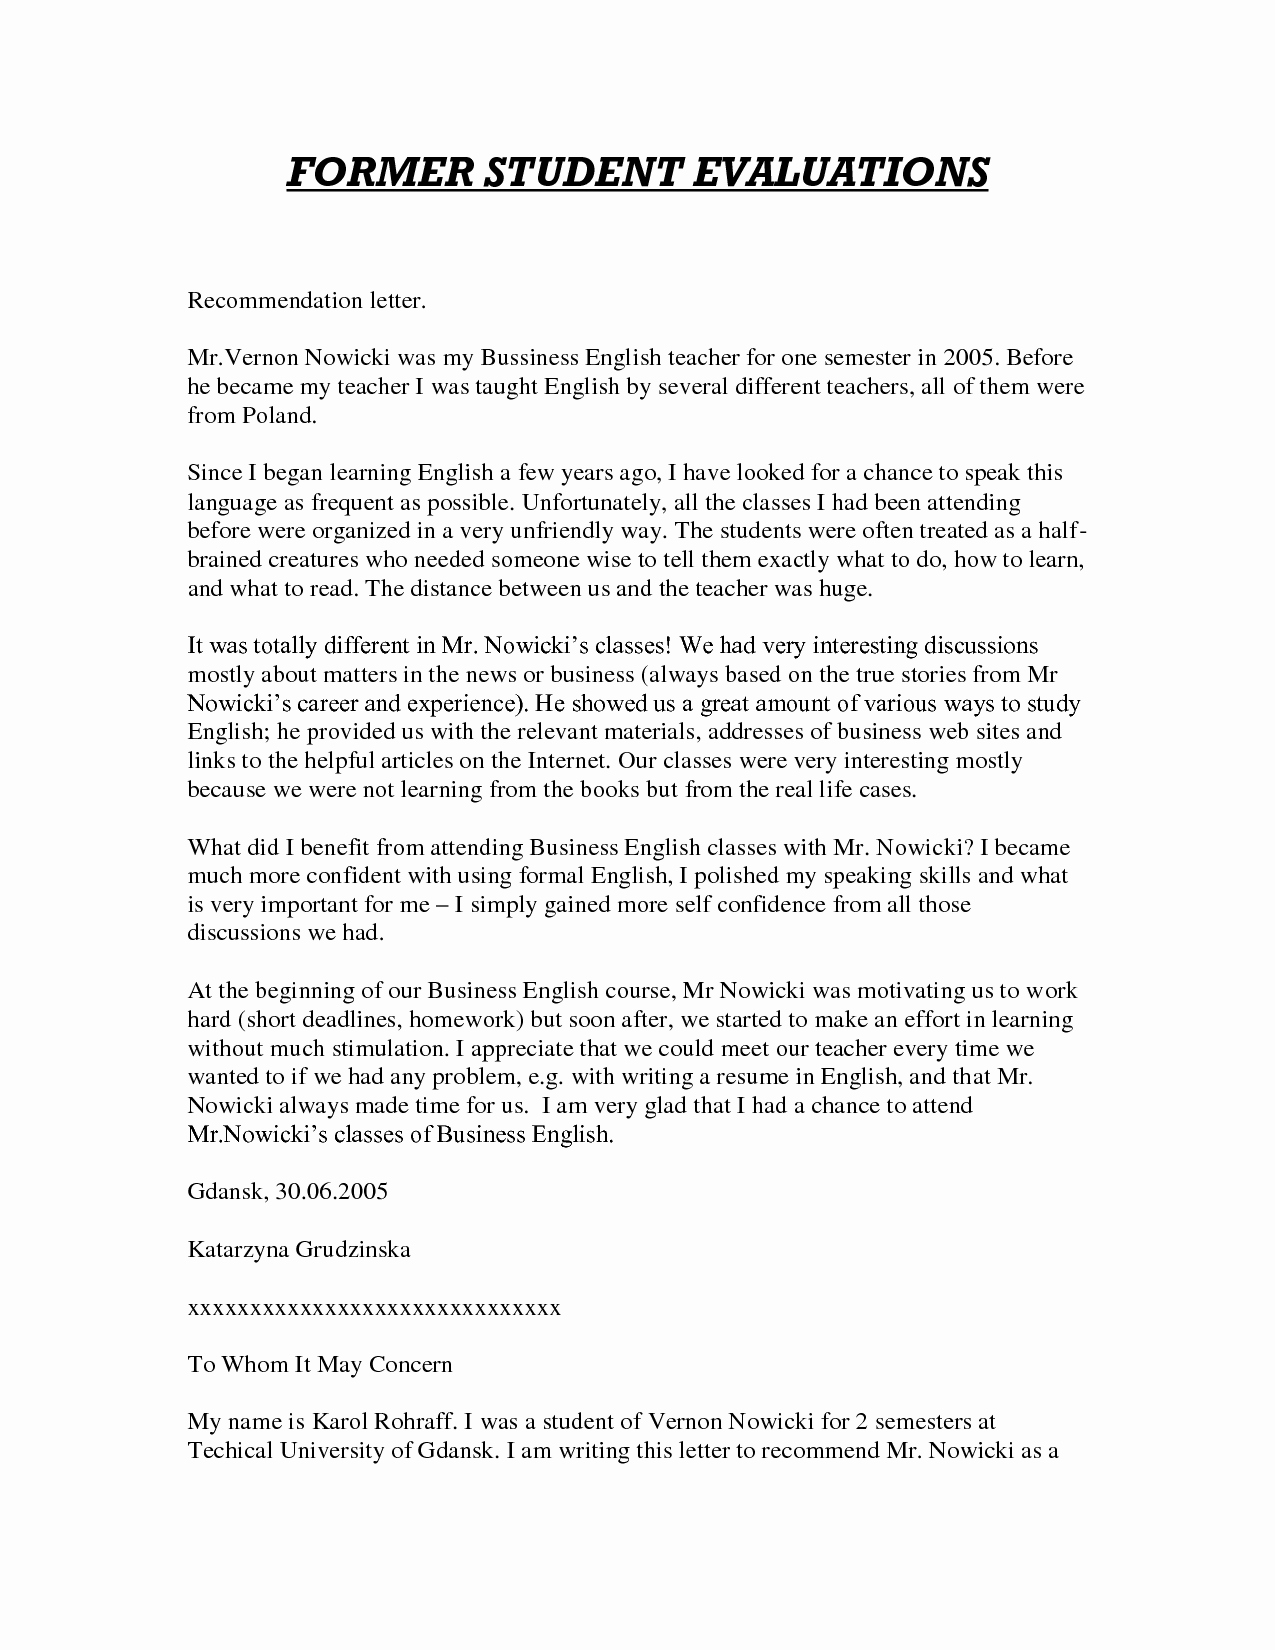 Teaching Letter Of Recommendation Template Inspirational Sample Letter Of Re Mendation for Teacher